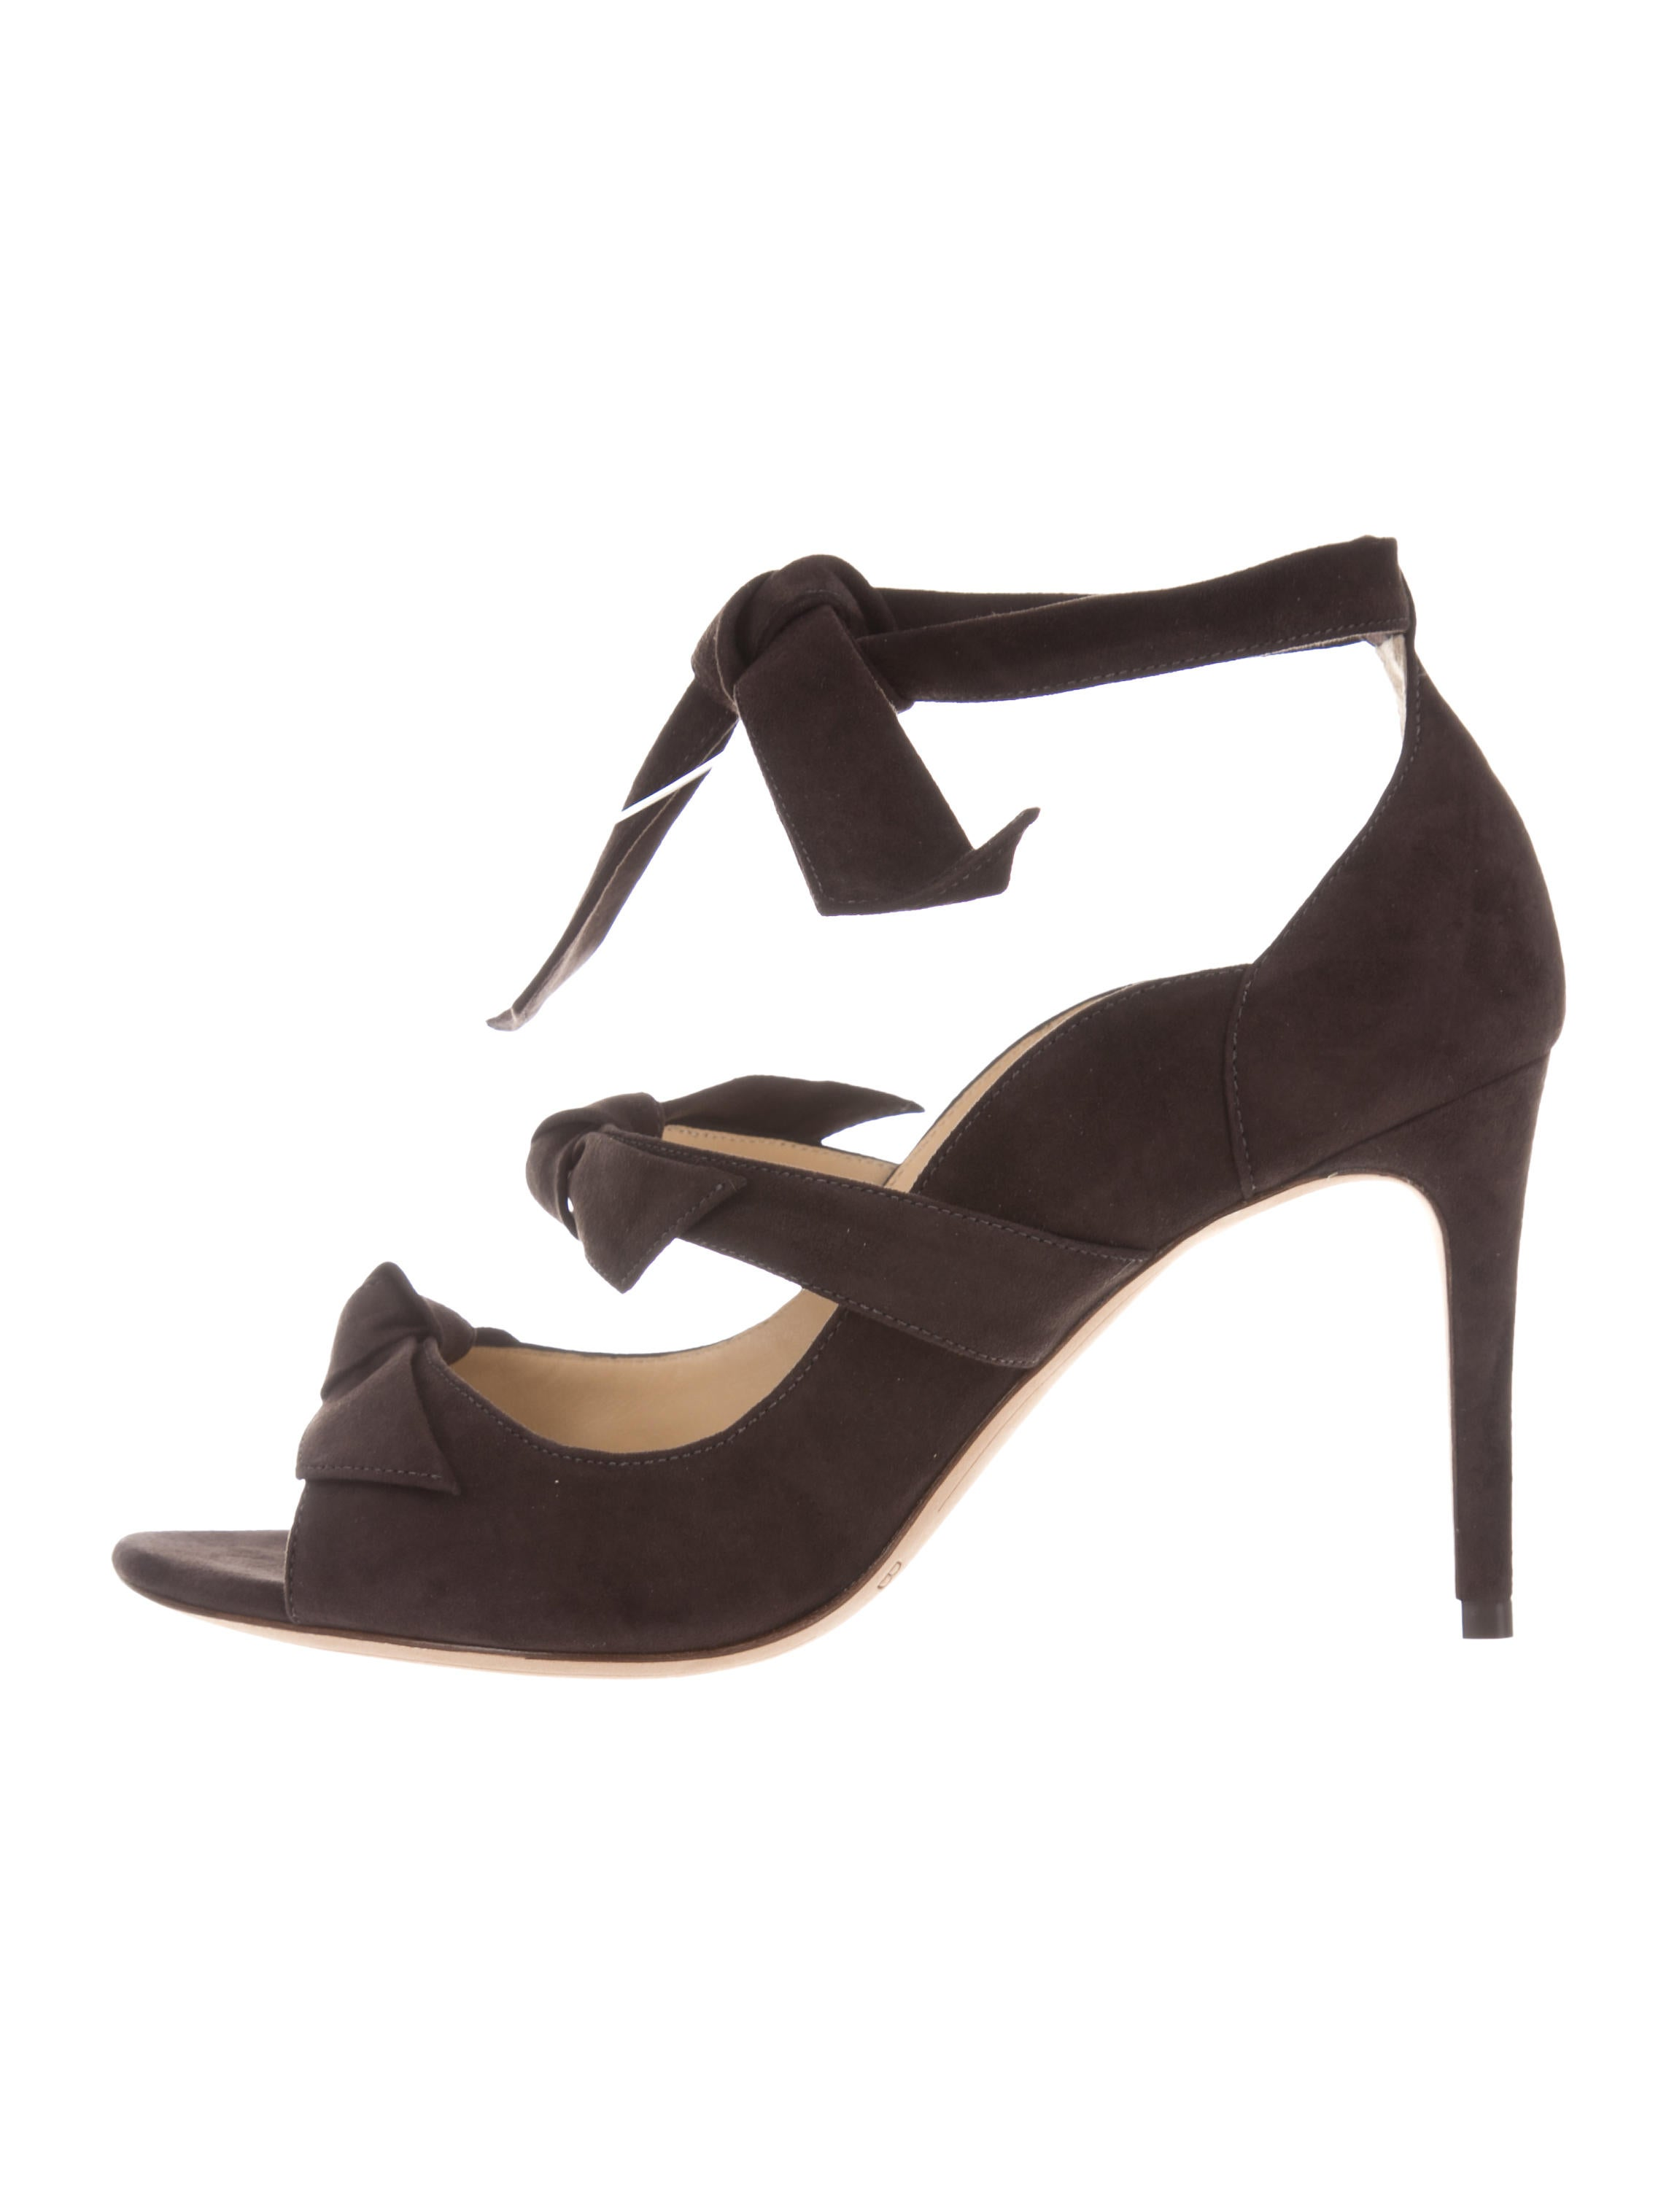 low price fee shipping online Alexandre Birman Charlotte High-Heel Sandals w/ Tags store sale online I1YGuDHsi